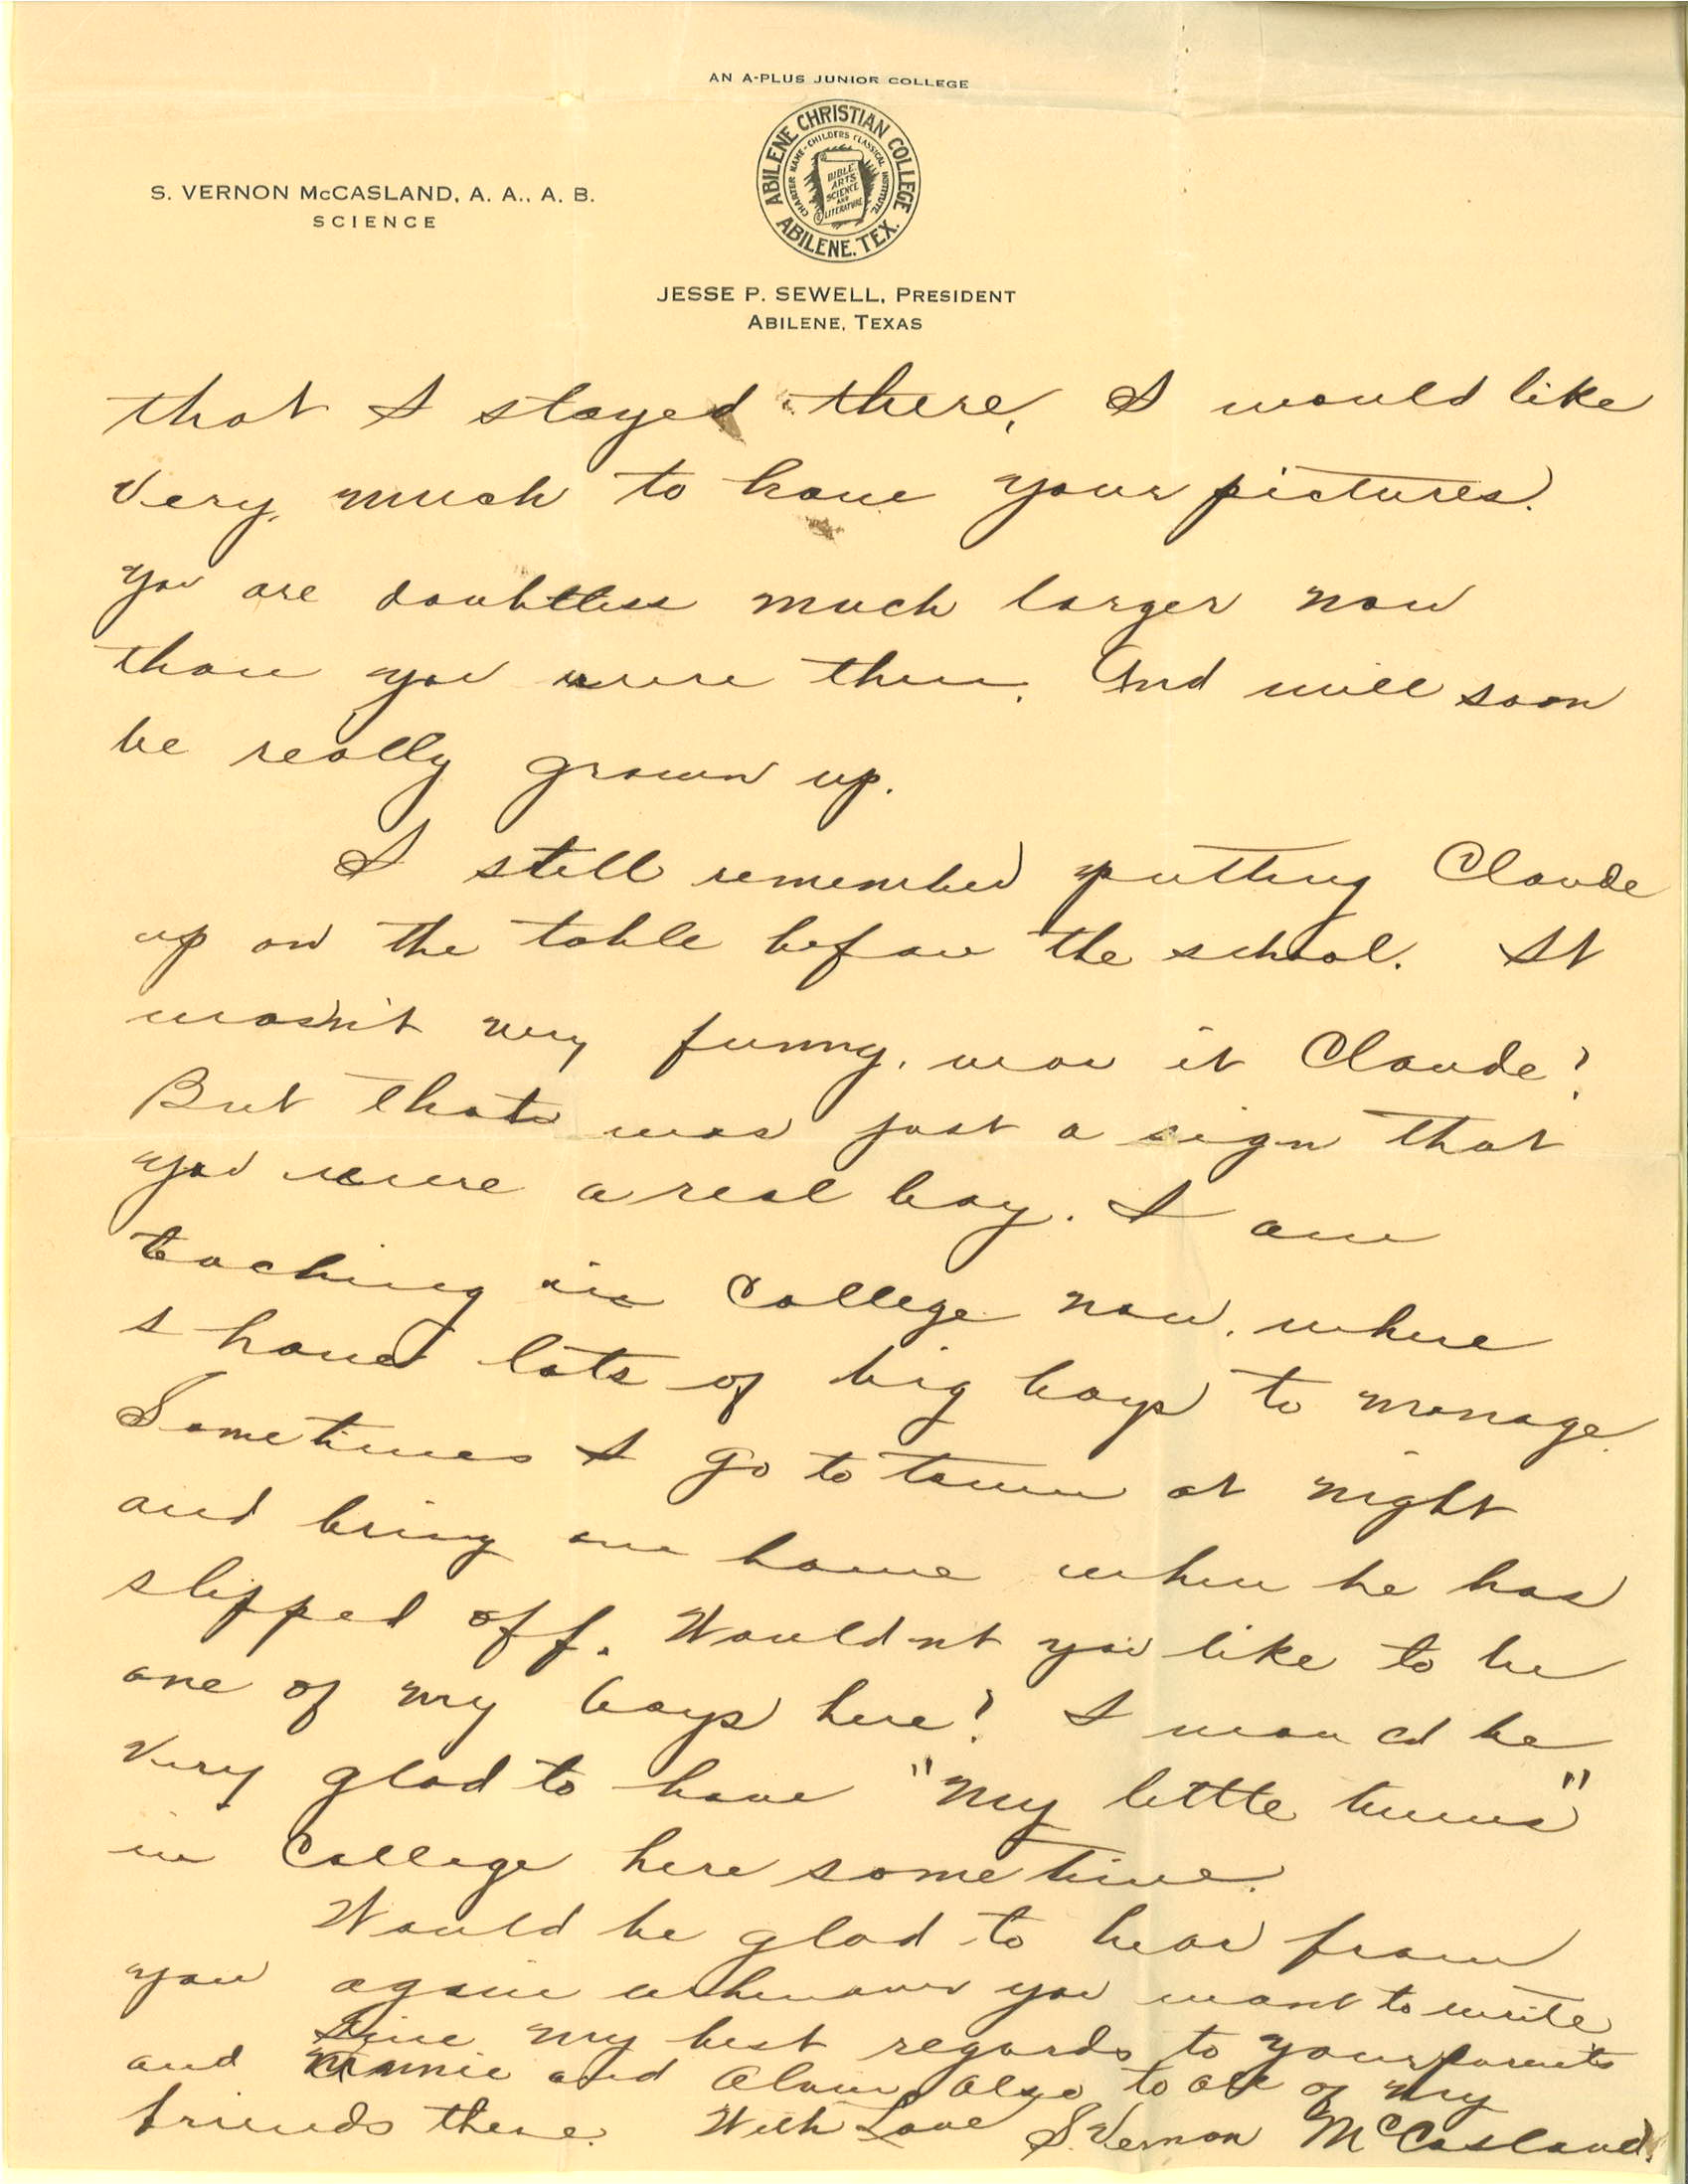 Letter, S. Vernon McCasland to Claude and Laude Tyson, May 25, 1919, p. 2